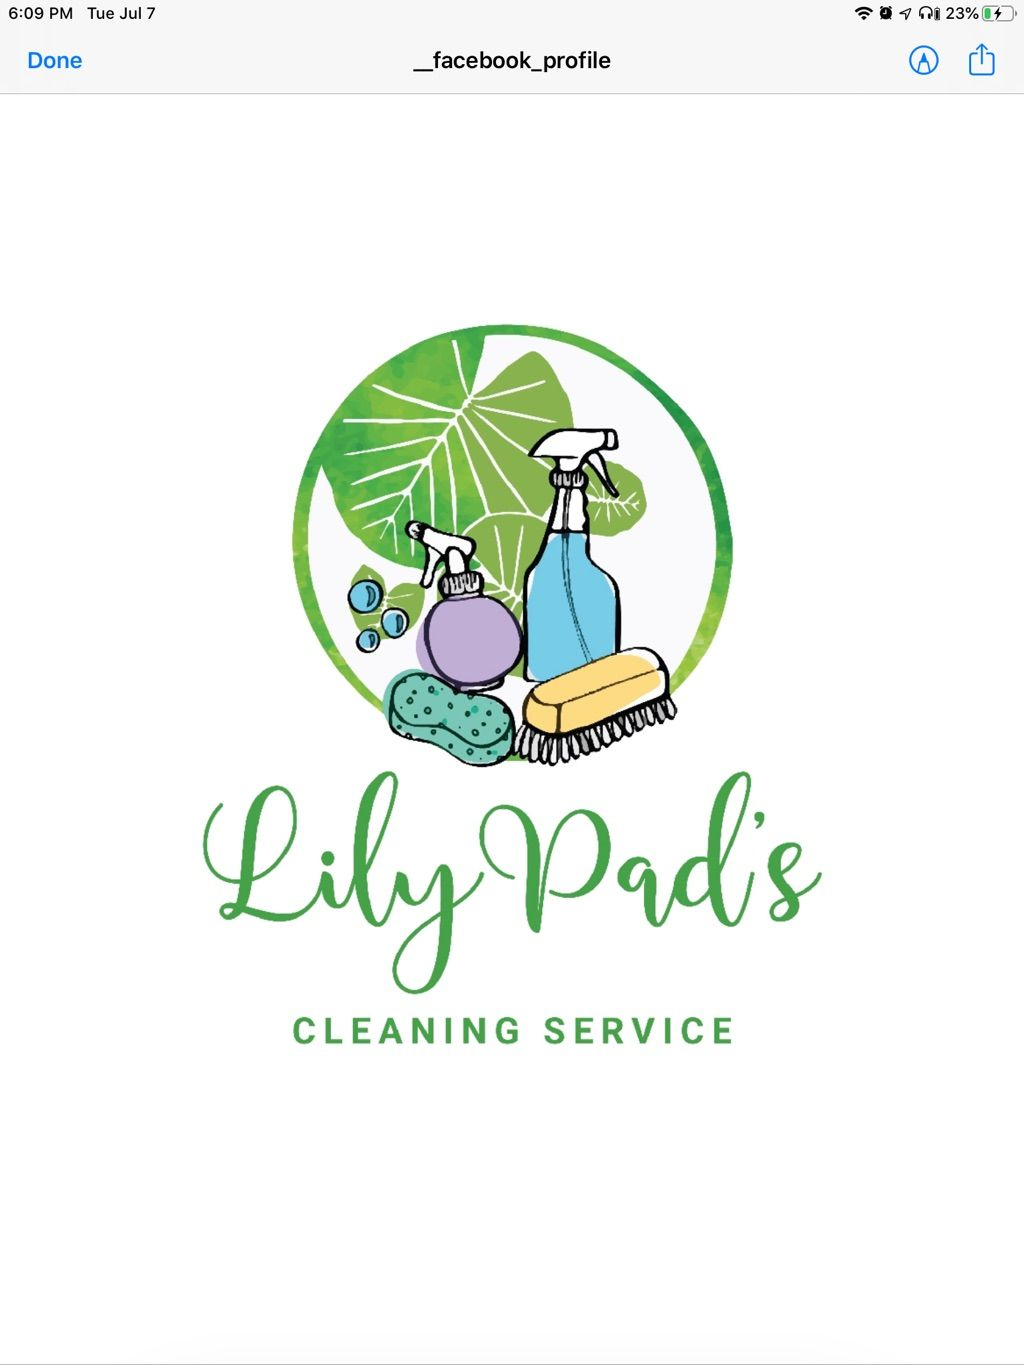 LilyPad's Cleaning Service